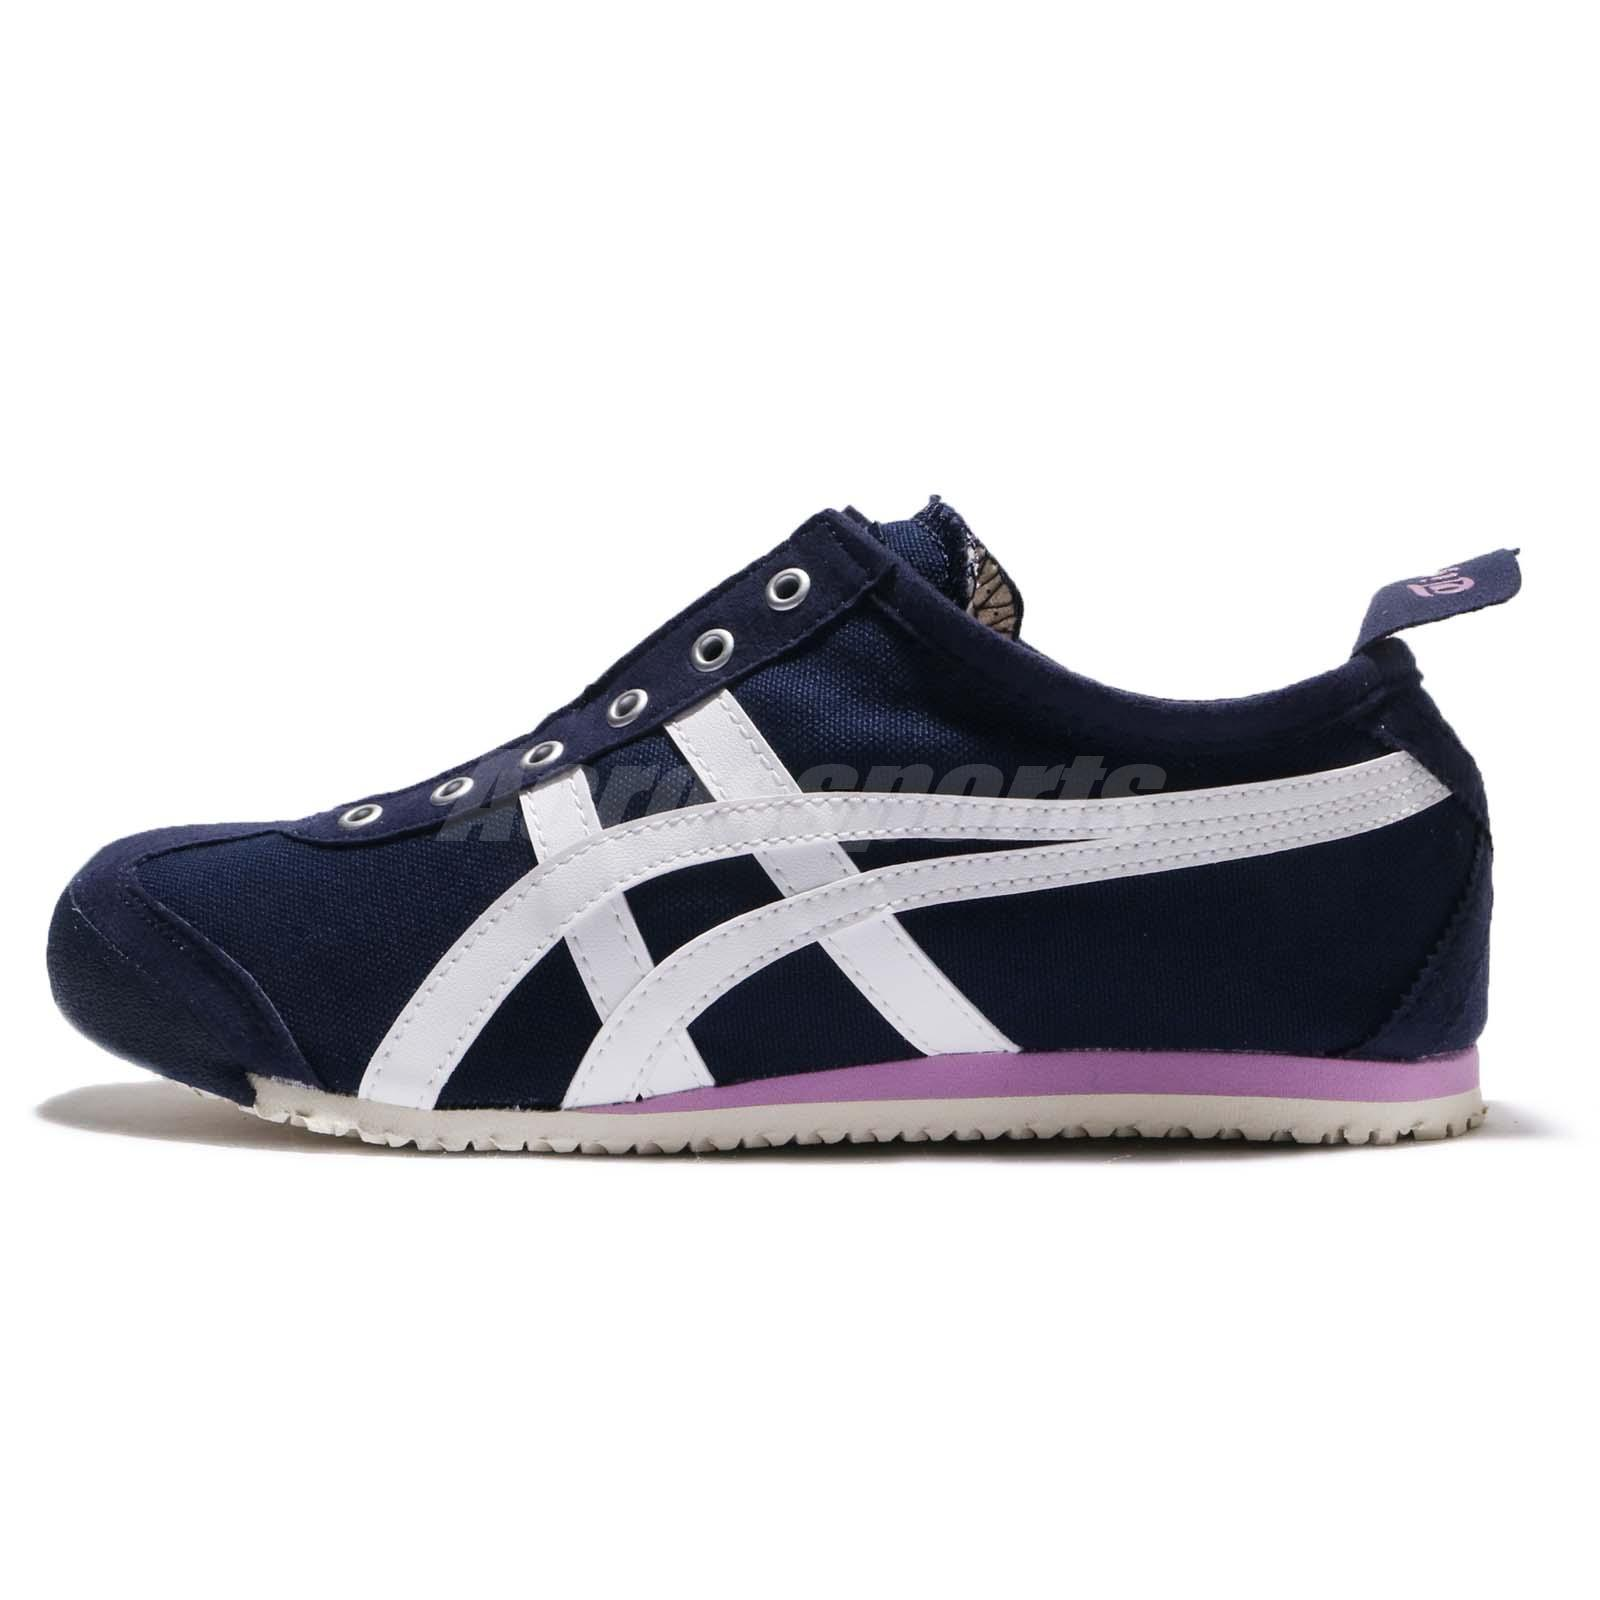 best website c5d92 ced1d Details about Asics Onitsuka Tiger Mexico 66 Slip-On Peacoat White Women  Shoes D3K5N-5801